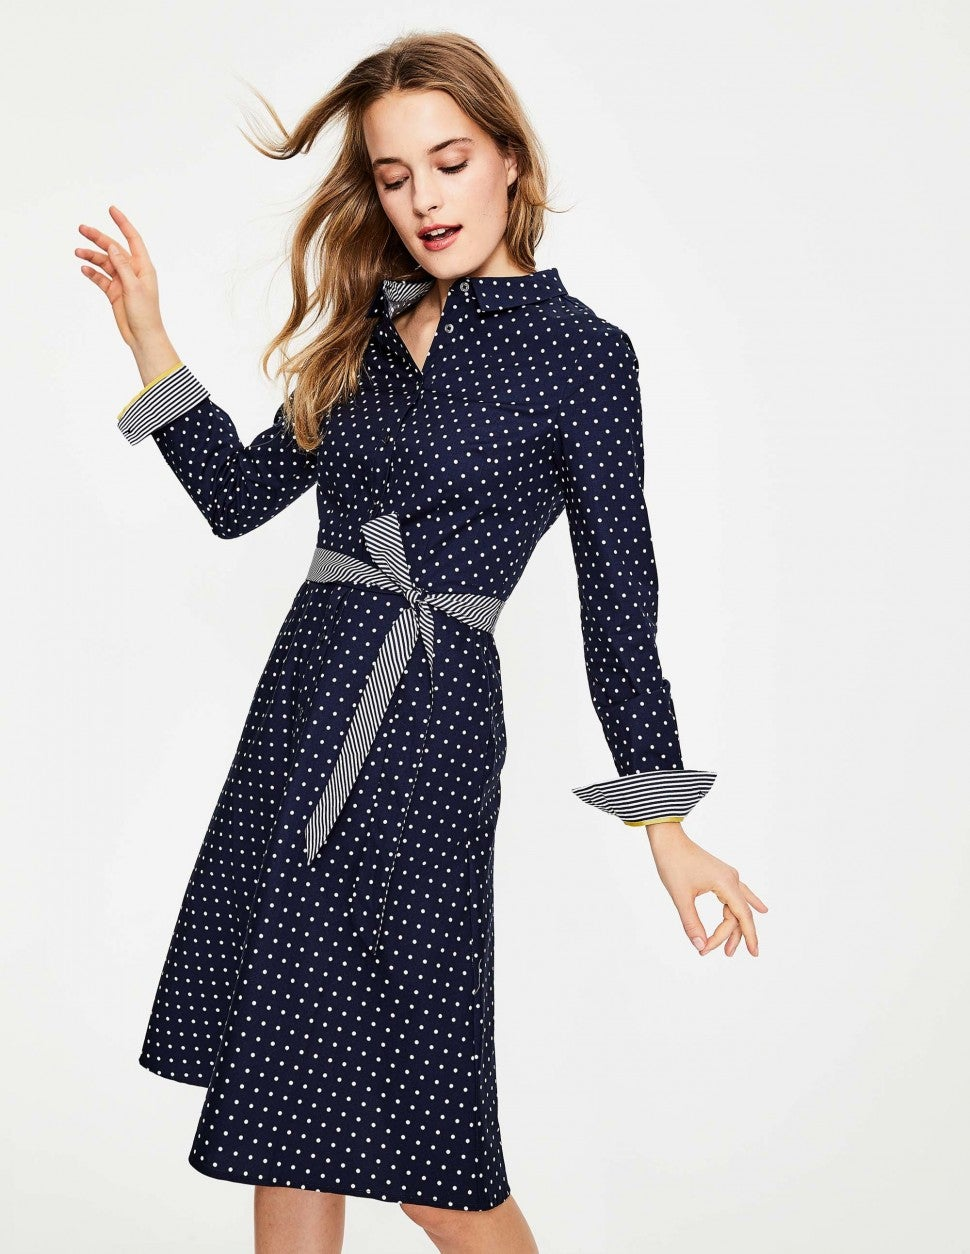 Boden polka dot shirtdress